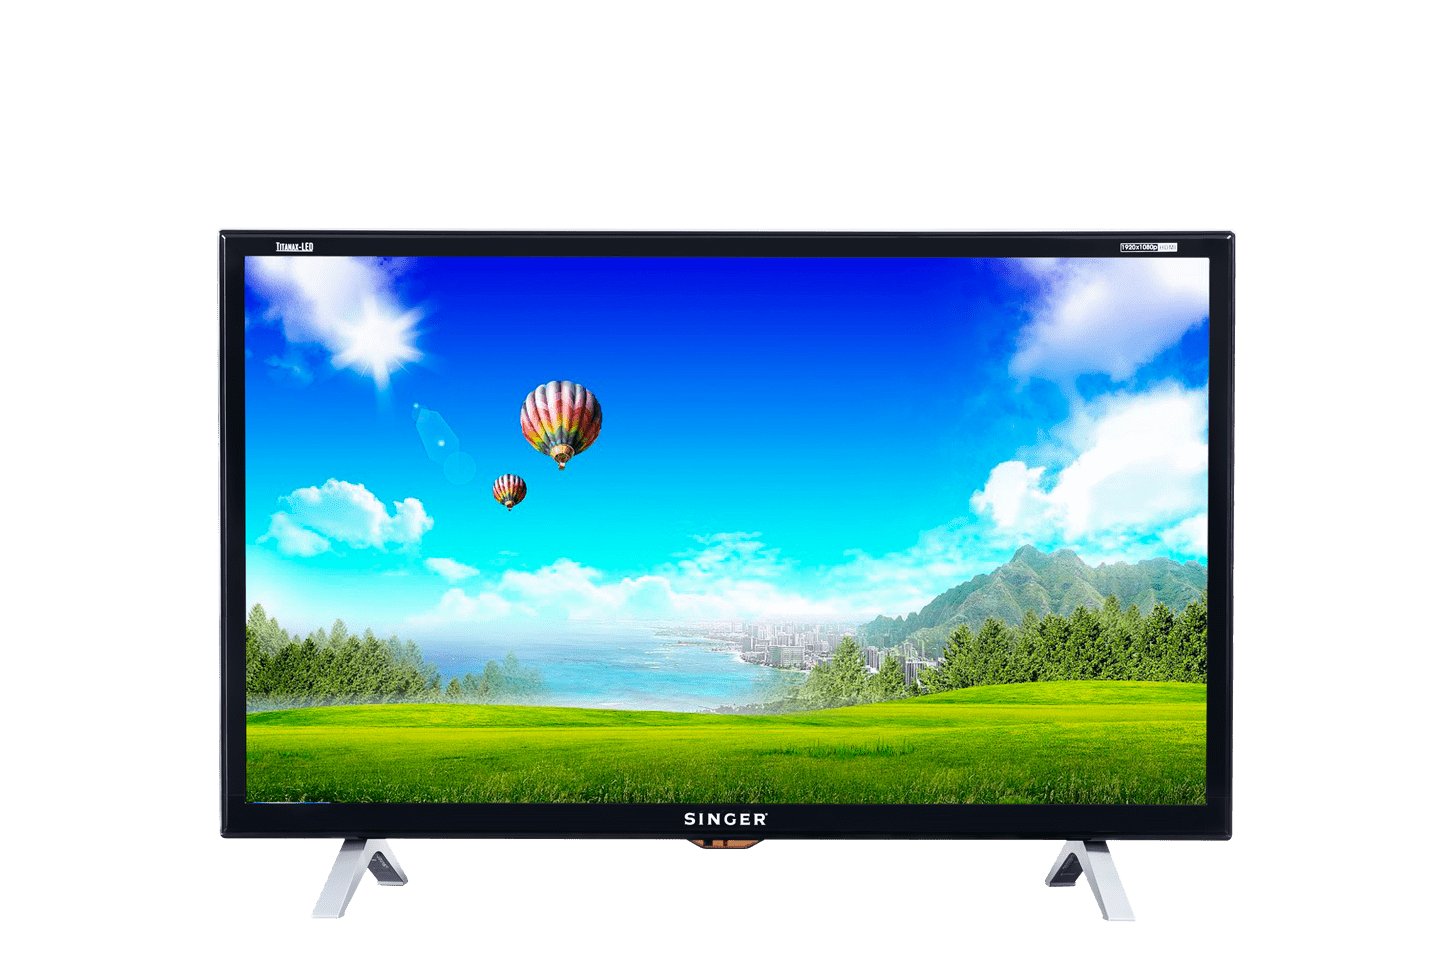 Tv screen static png. Hd transparent images pluspng